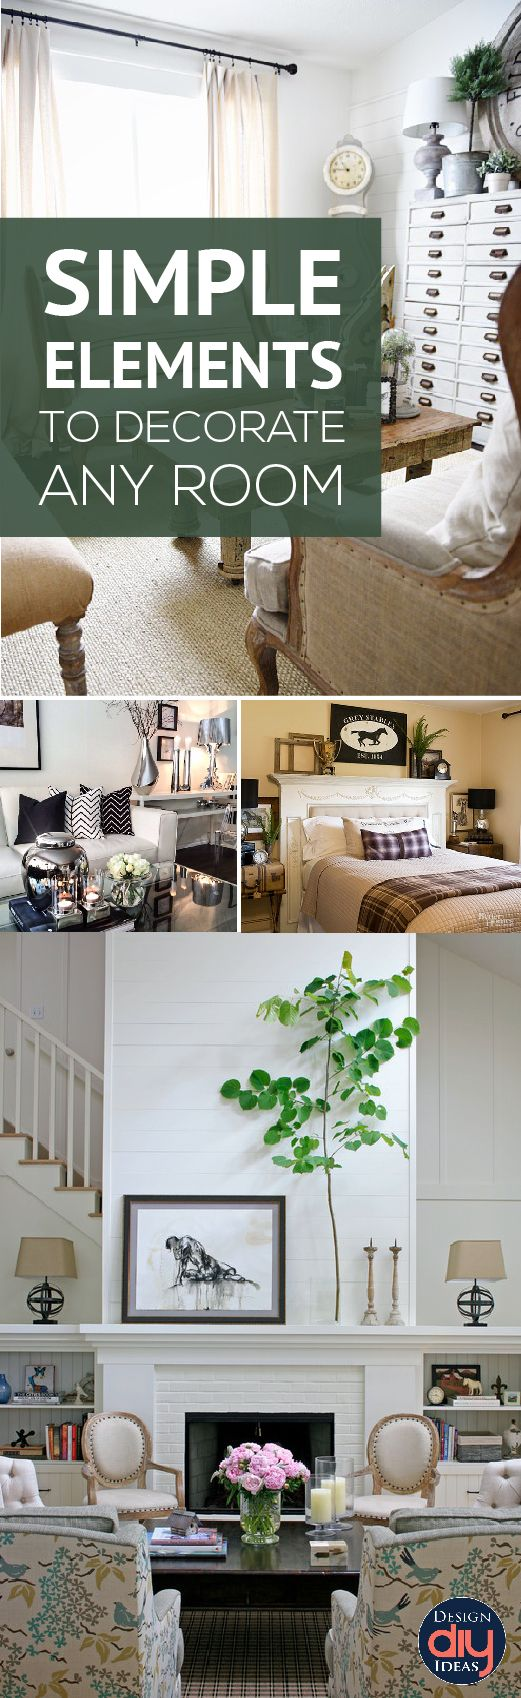 Learn how to decorate your kitchen, family room, living room, bathroom, bedrooms, entry, ANY room!